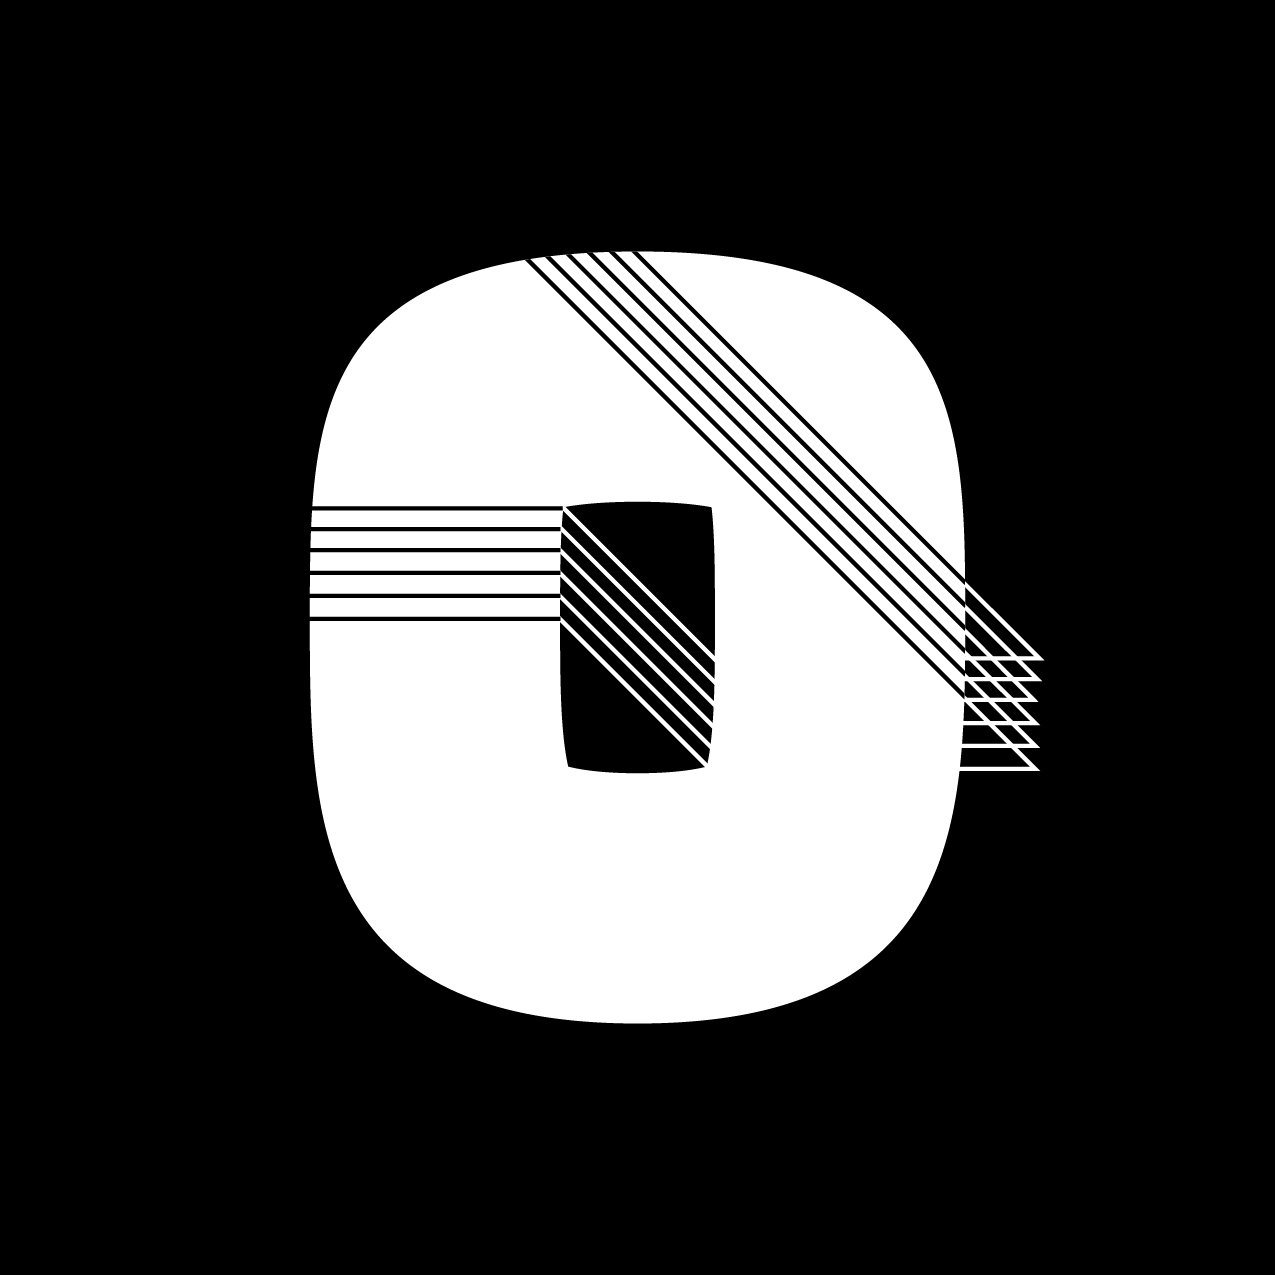 Letter O9 Design by Furia